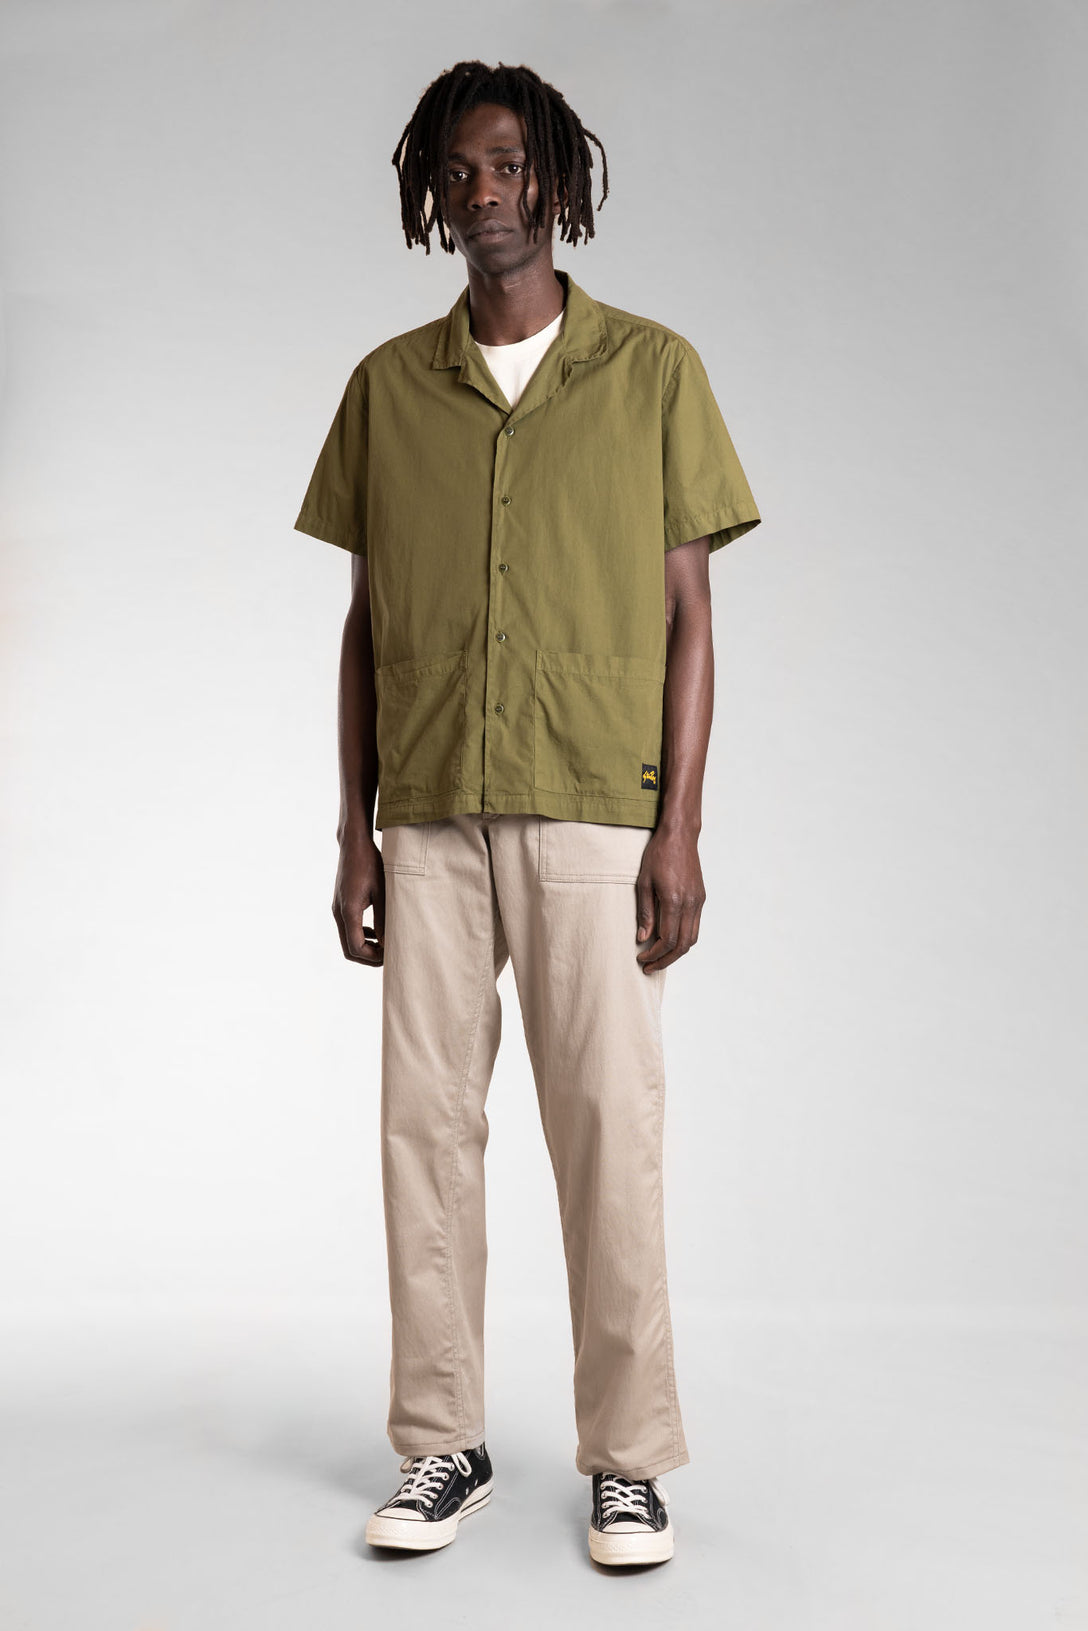 OG Loose Fatigue (Khaki Twill) - Stan Ray